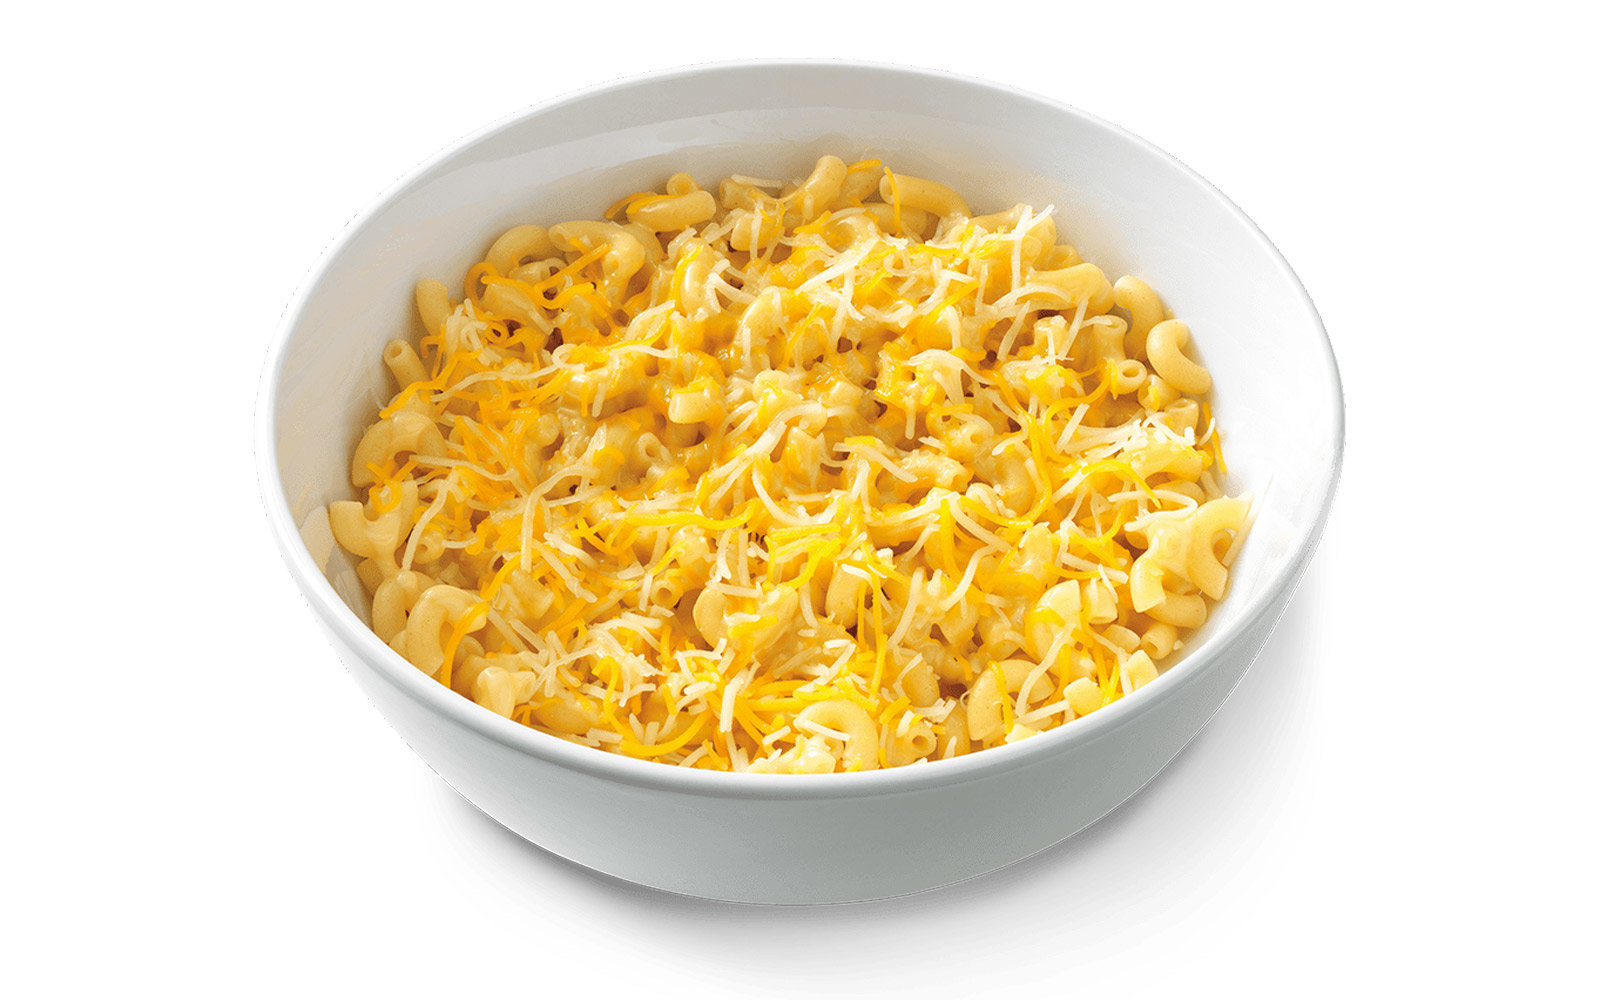 Noodles & Company: Wisconsin Mac n' Cheese